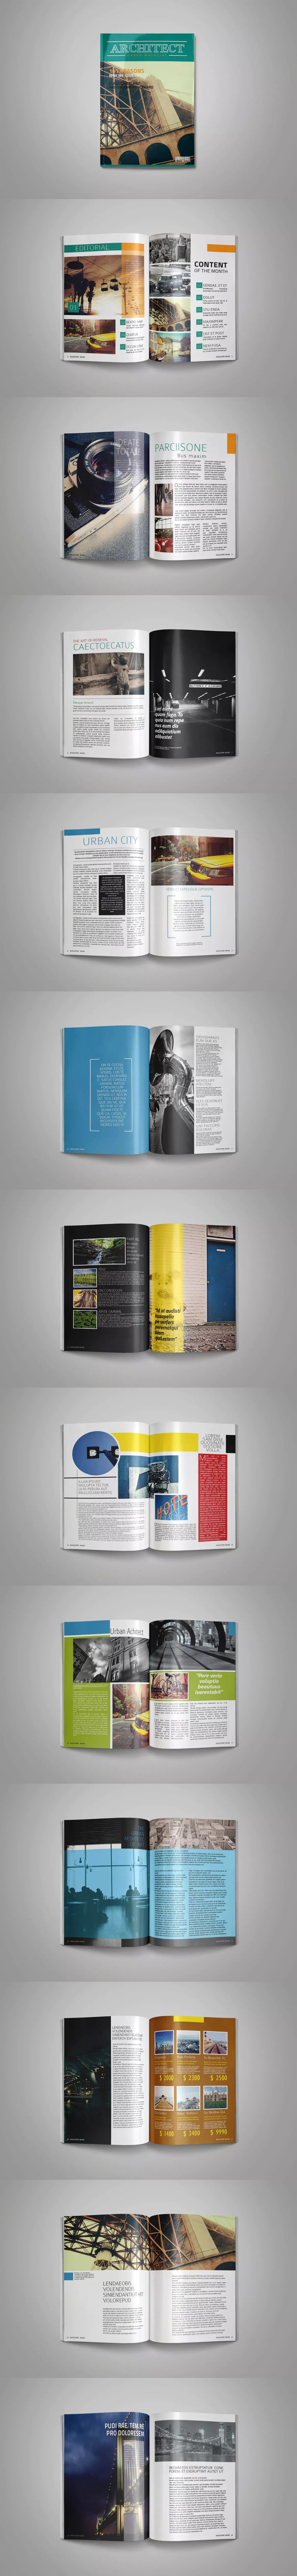 InDesign Magazine Template INDD Indesign Templates Design Printing